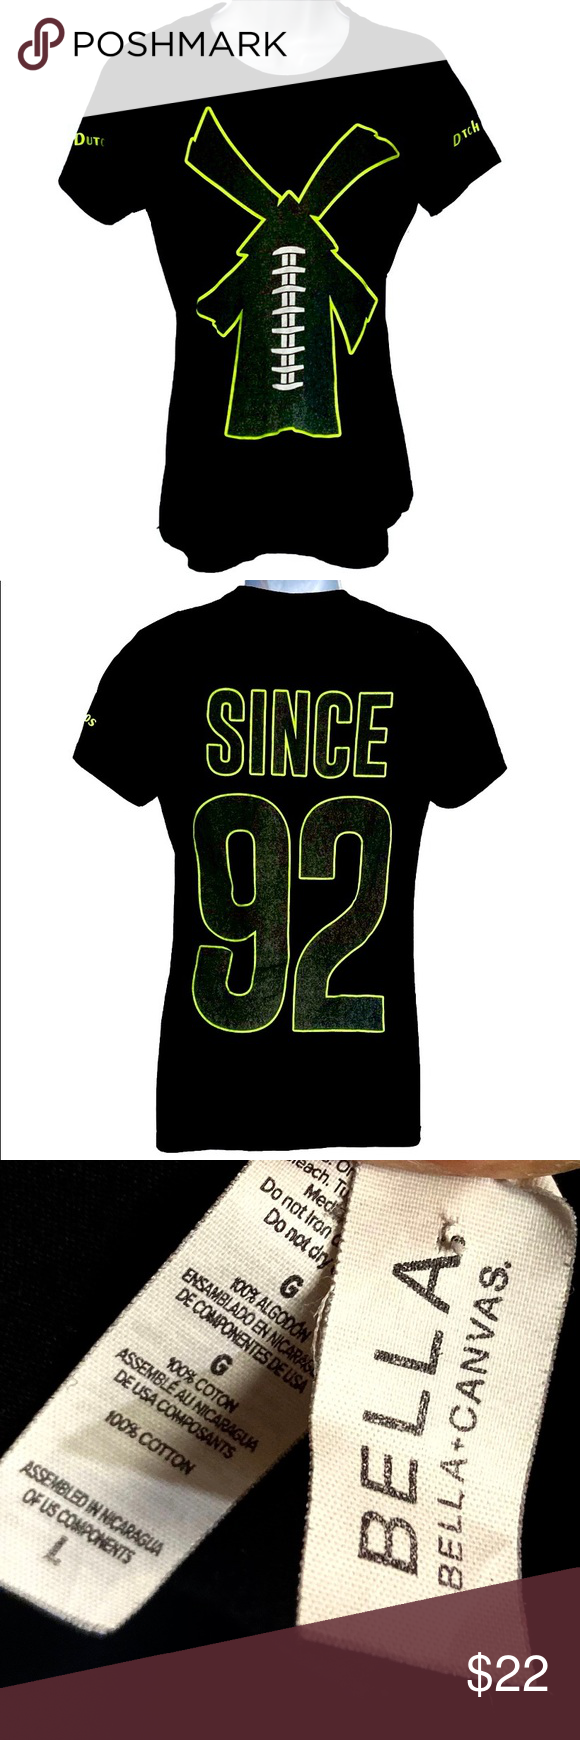 "Dutch Bros Since 92 L Black/Green 100% Cotton Tee Super Cute Dutch Bros ""Since 92"" Women's Sz L Black & Fluorescent Green 100% Cotton Short Sleeve T-Shirt Dutch Bros Tops Tees - Short Sleeve #dutchbros Dutch Bros Since 92 L Black/Green 100% Cotton Tee Super Cute Dutch Bros ""Since 92"" Women's Sz L Black & Fluorescent Green 100% Cotton Short Sleeve T-Shirt Dutch Bros Tops Tees - Short Sleeve #dutchbros Dutch Bros Since 92 L Black/Green 100% Cotton Tee Super Cute Dutch Bros ""Since 92� #dutchbros"